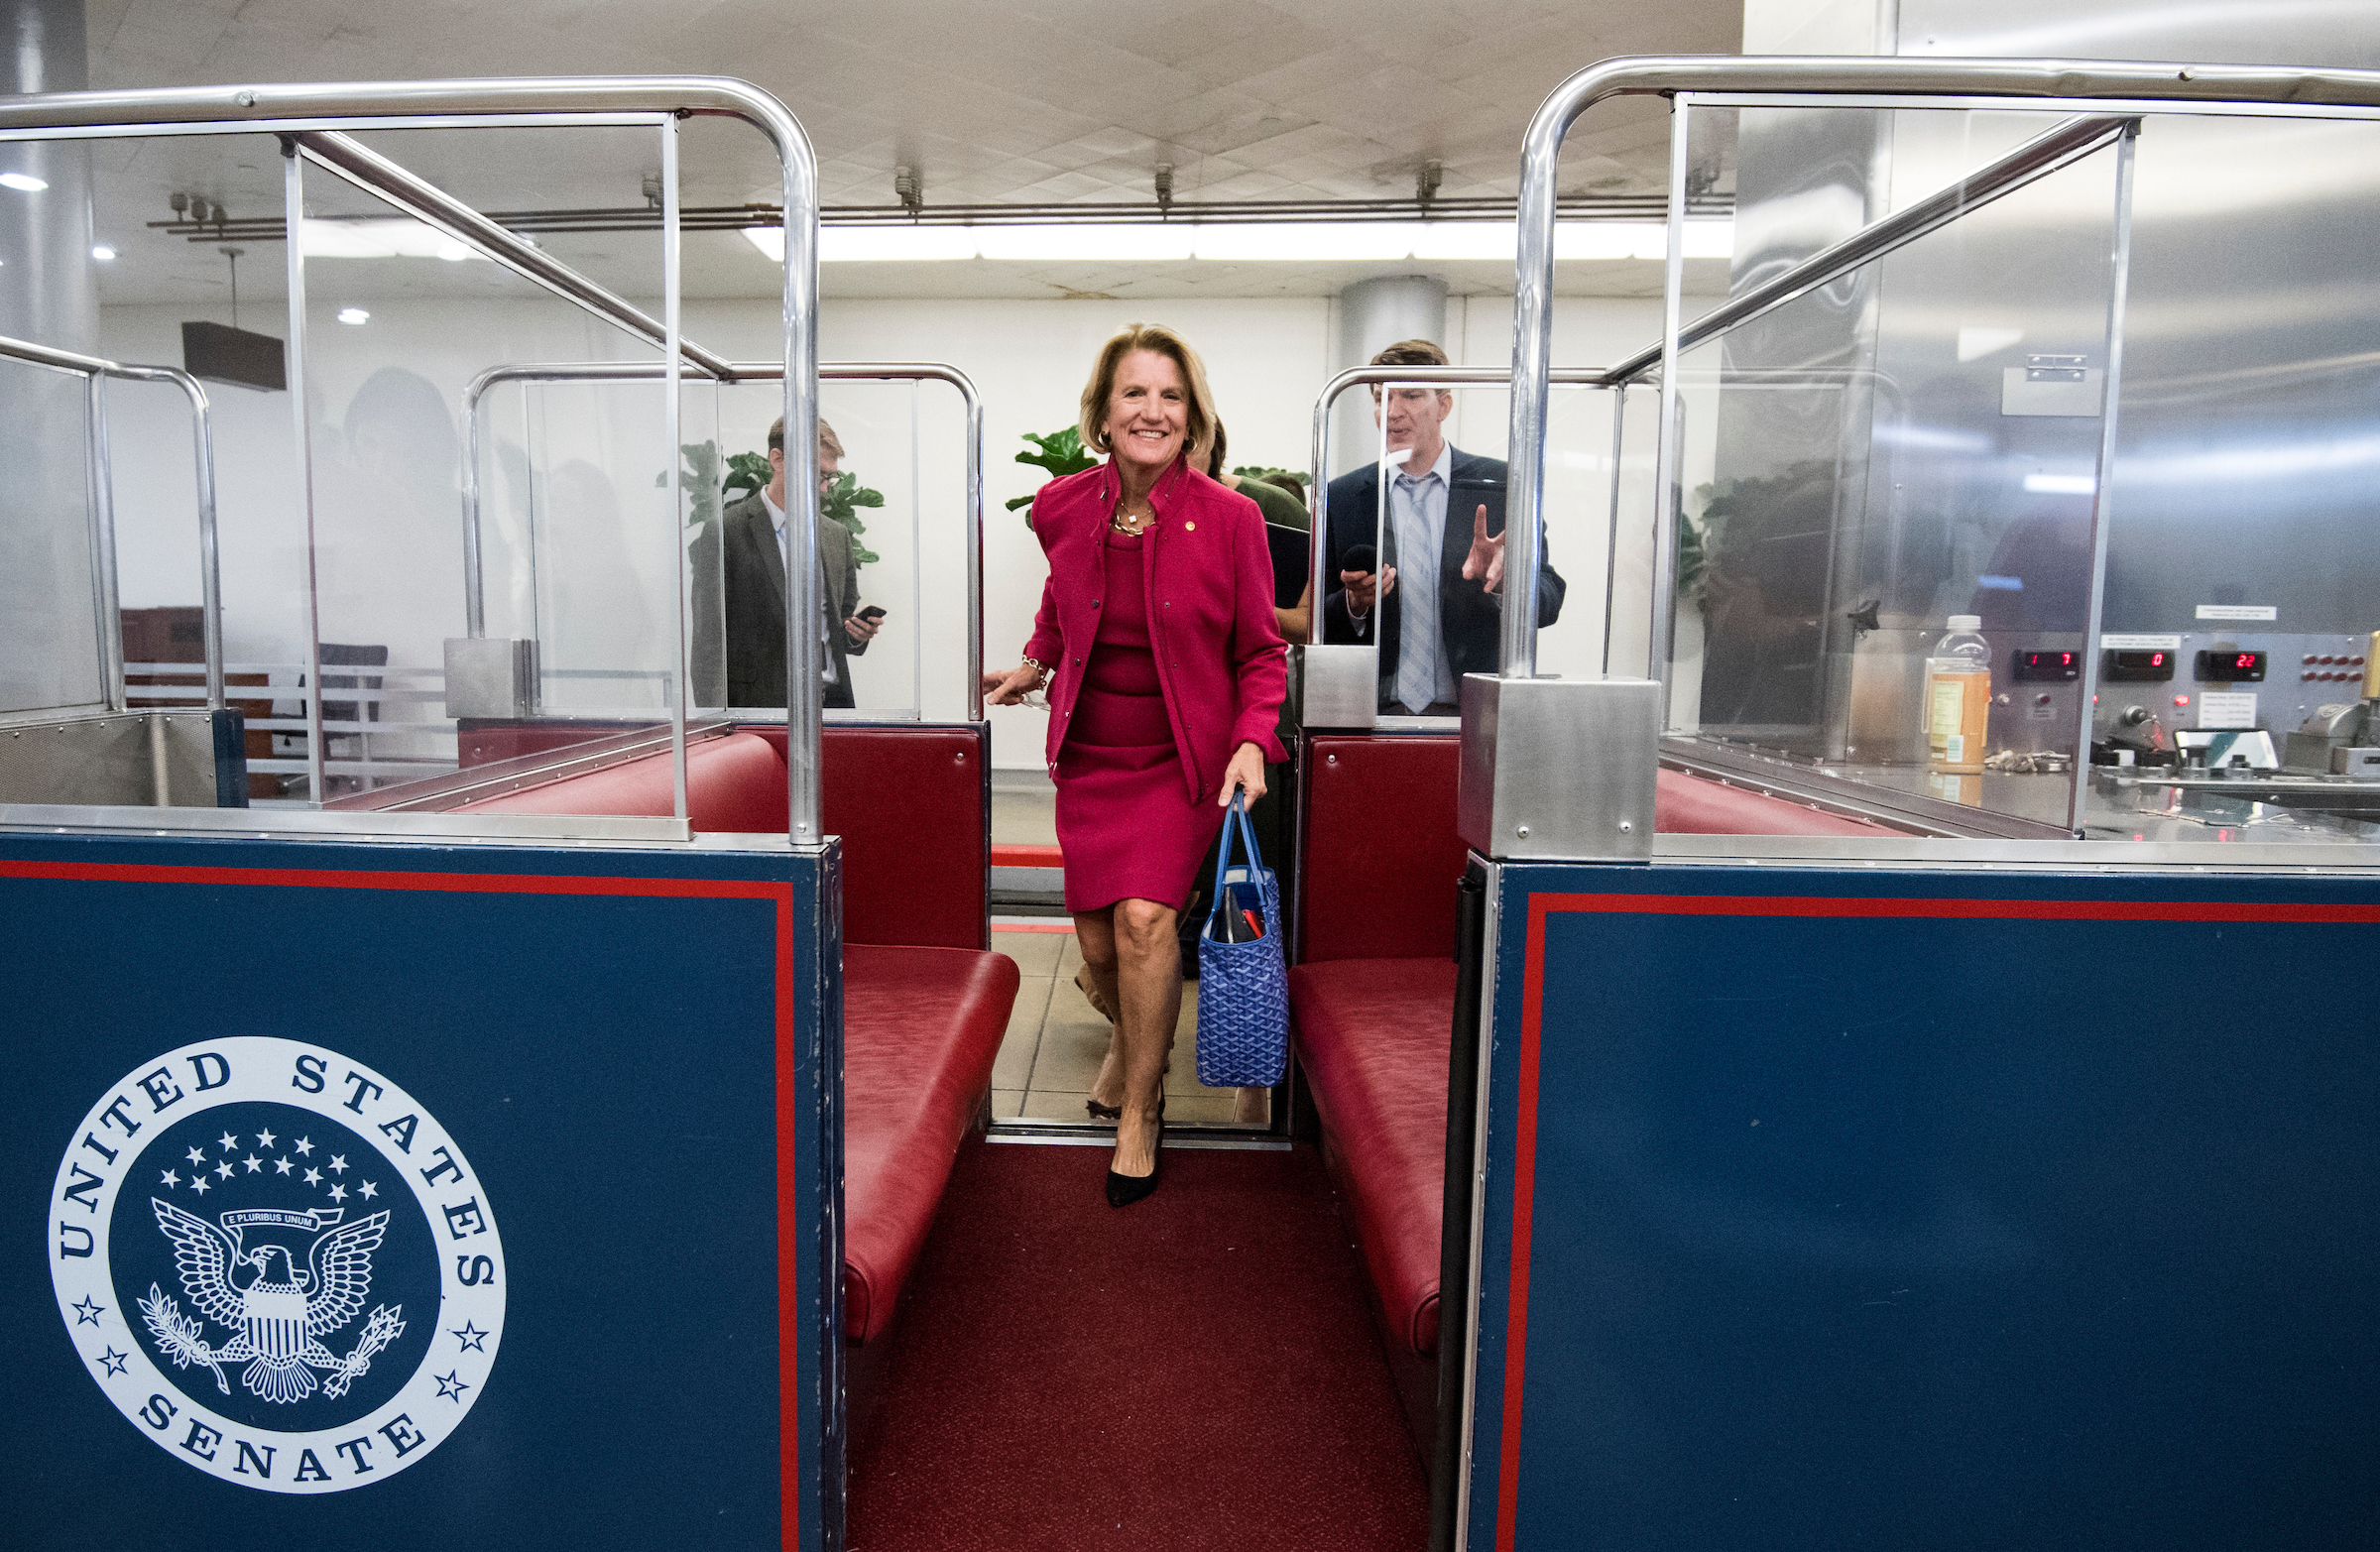 UNITED STATES - OCTOBER 18: Sen. Shelley Moore Capito, R-W.Va., boards the Senate subway in the Capitol on Wednesday, Oct. 18, 2017. (Photo By Bill Clark/CQ Roll Call)